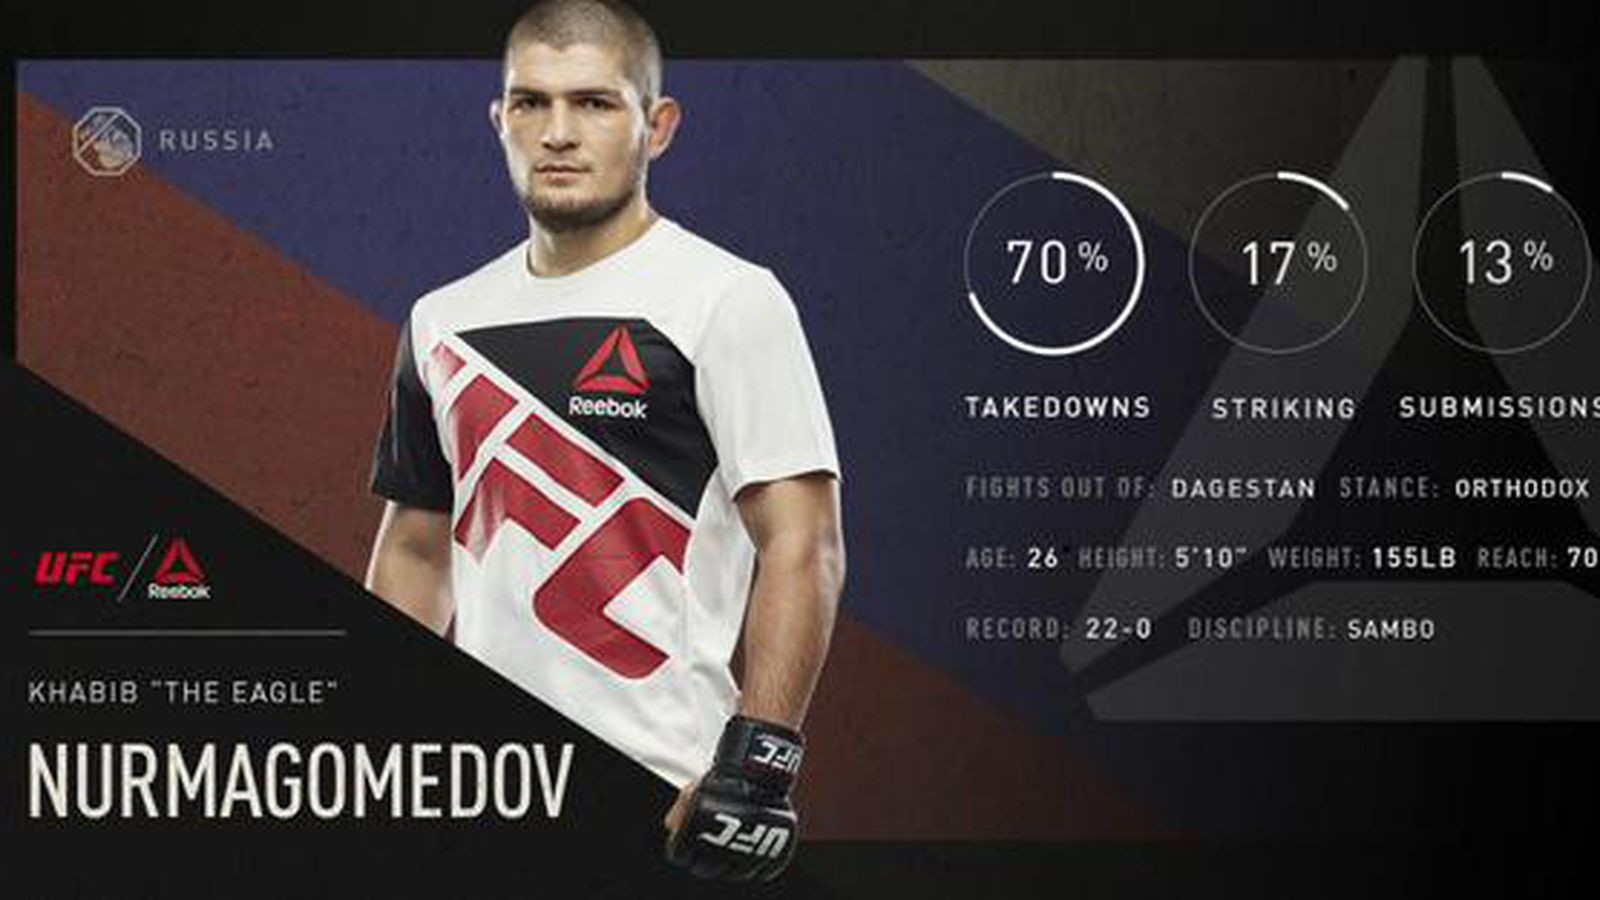 Ufc Ultimate Fighter Championship >> Khabib Nurmagomedov latest UFC fighter to ink solo sponsorship with Reebok - MMAmania.com